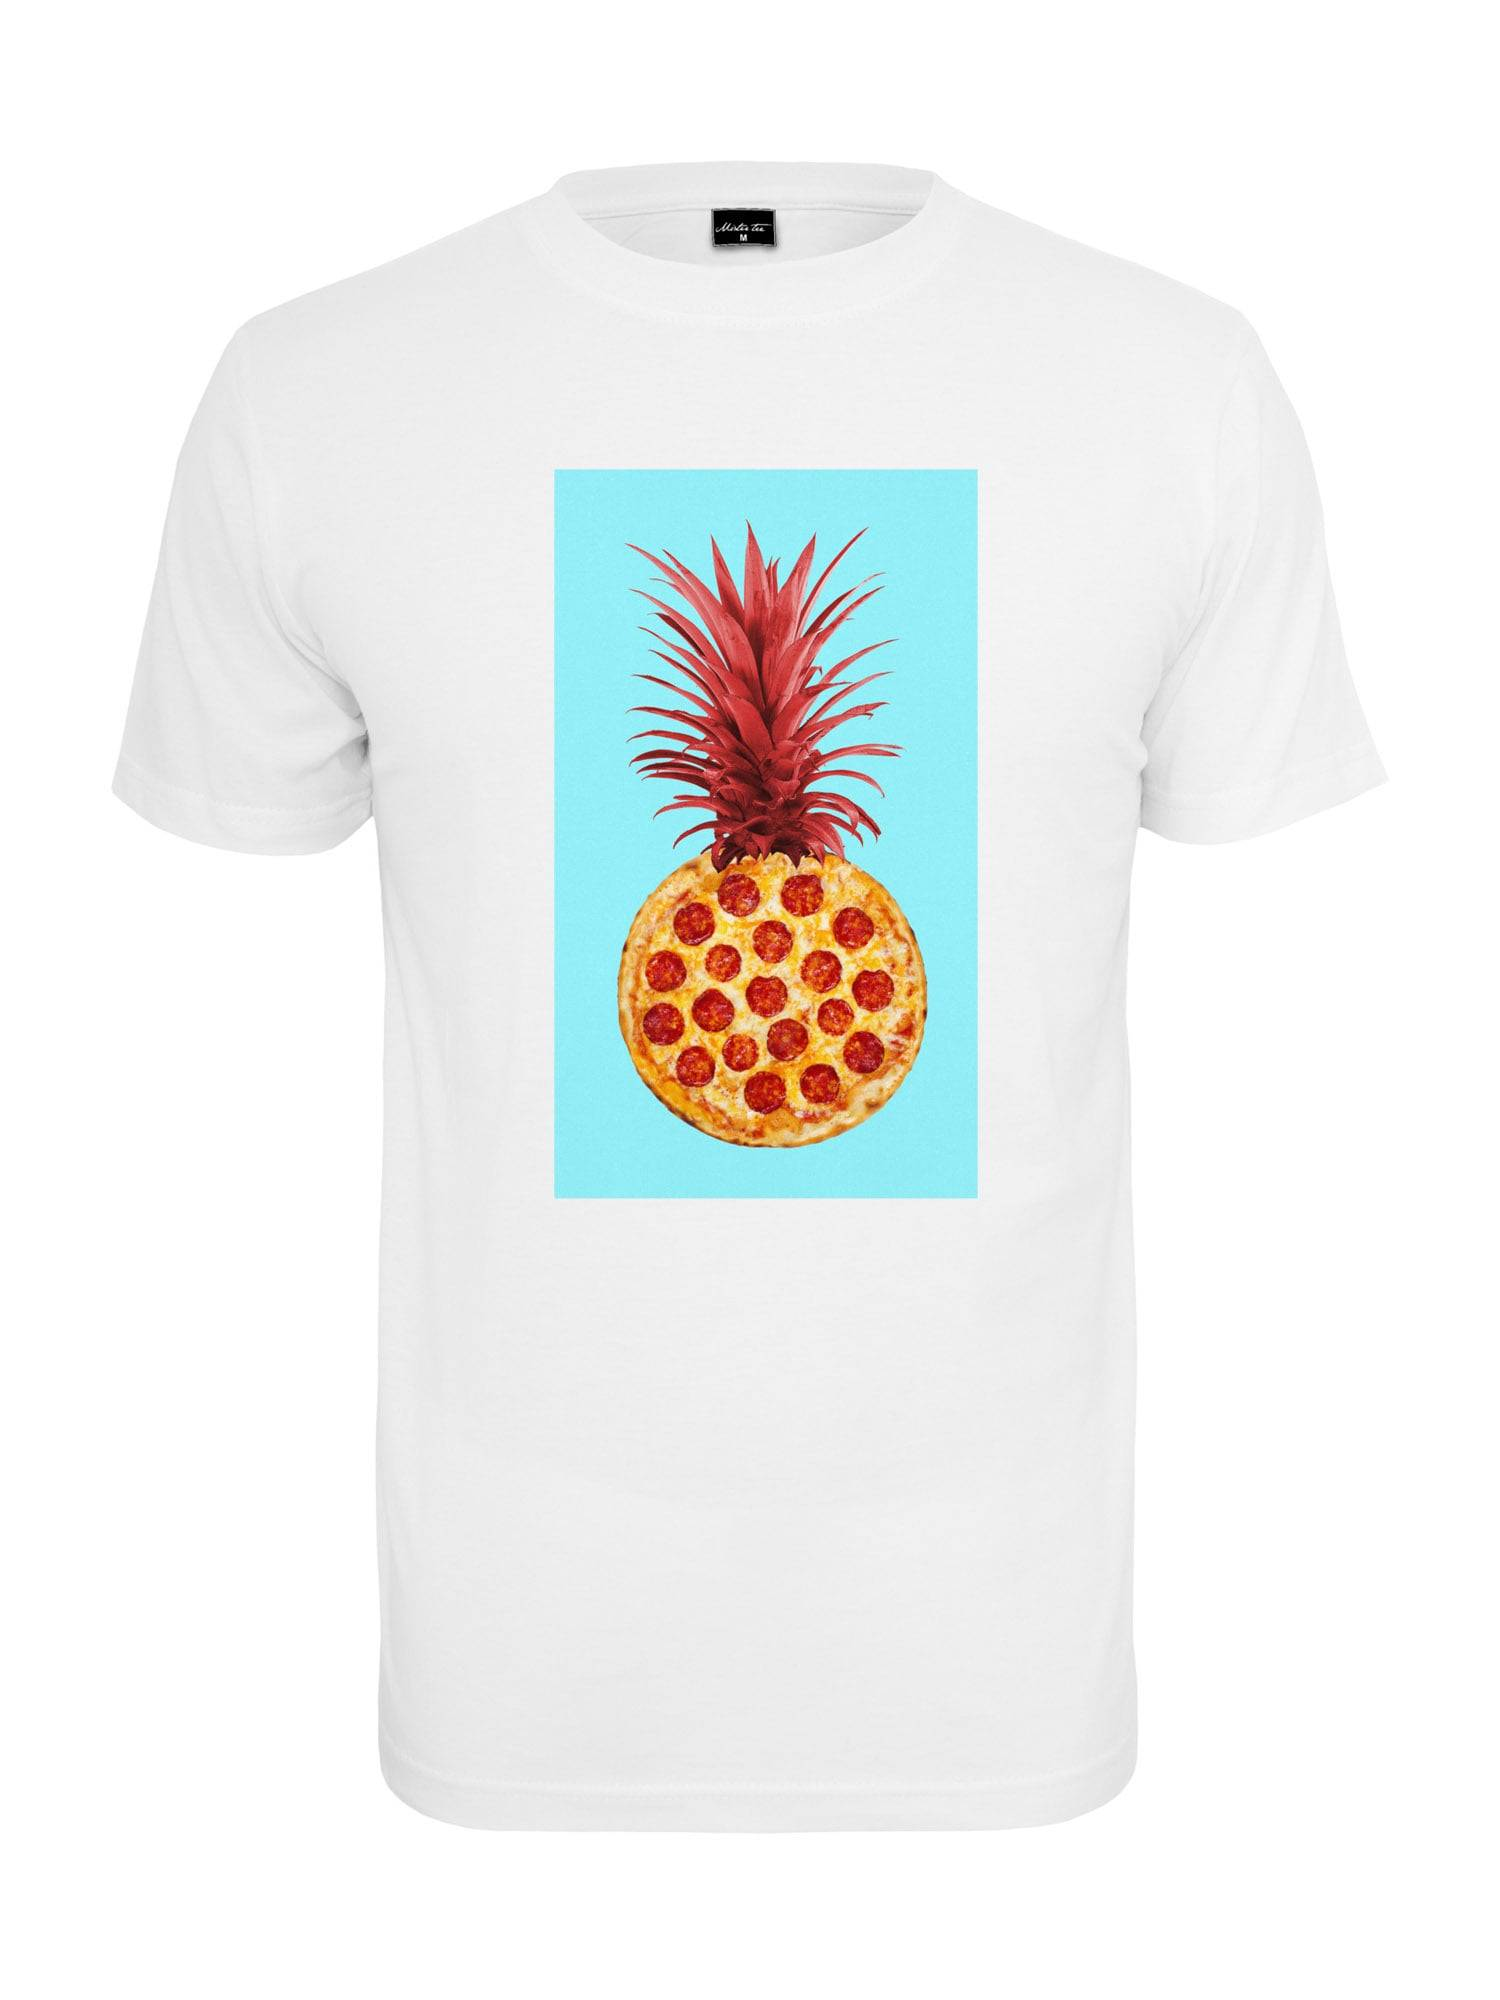 Tee T-Shirt 'Pizza Pineapple'  - Blanc - Taille: XS - male